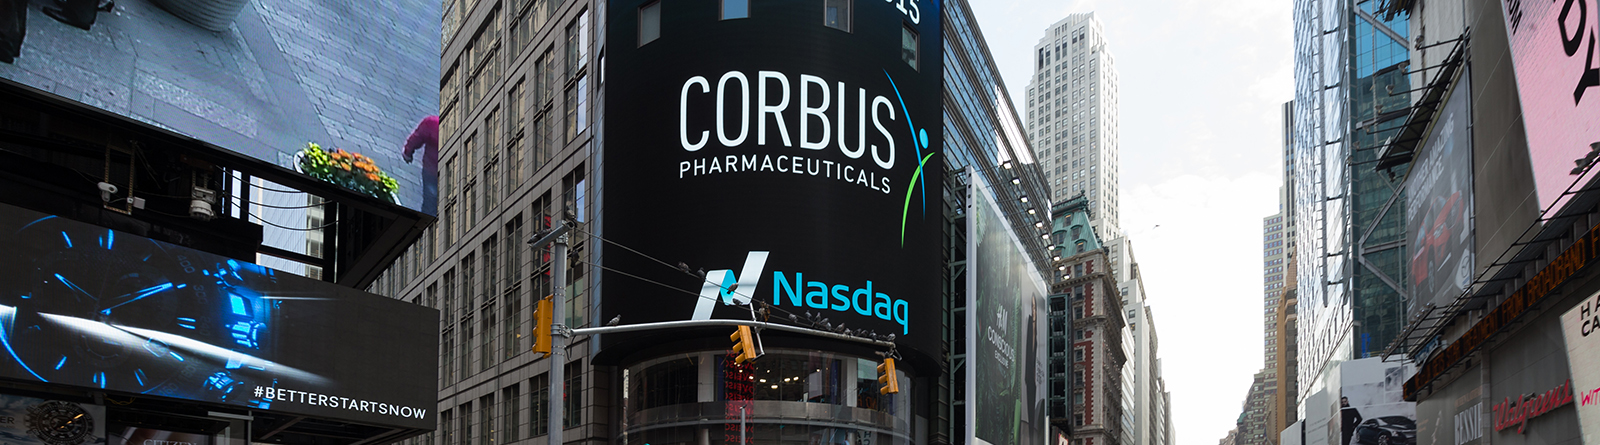 Corbus Pharmaceuticals Reports 2014 Financial Results and Provides 2015 Business Update Banner